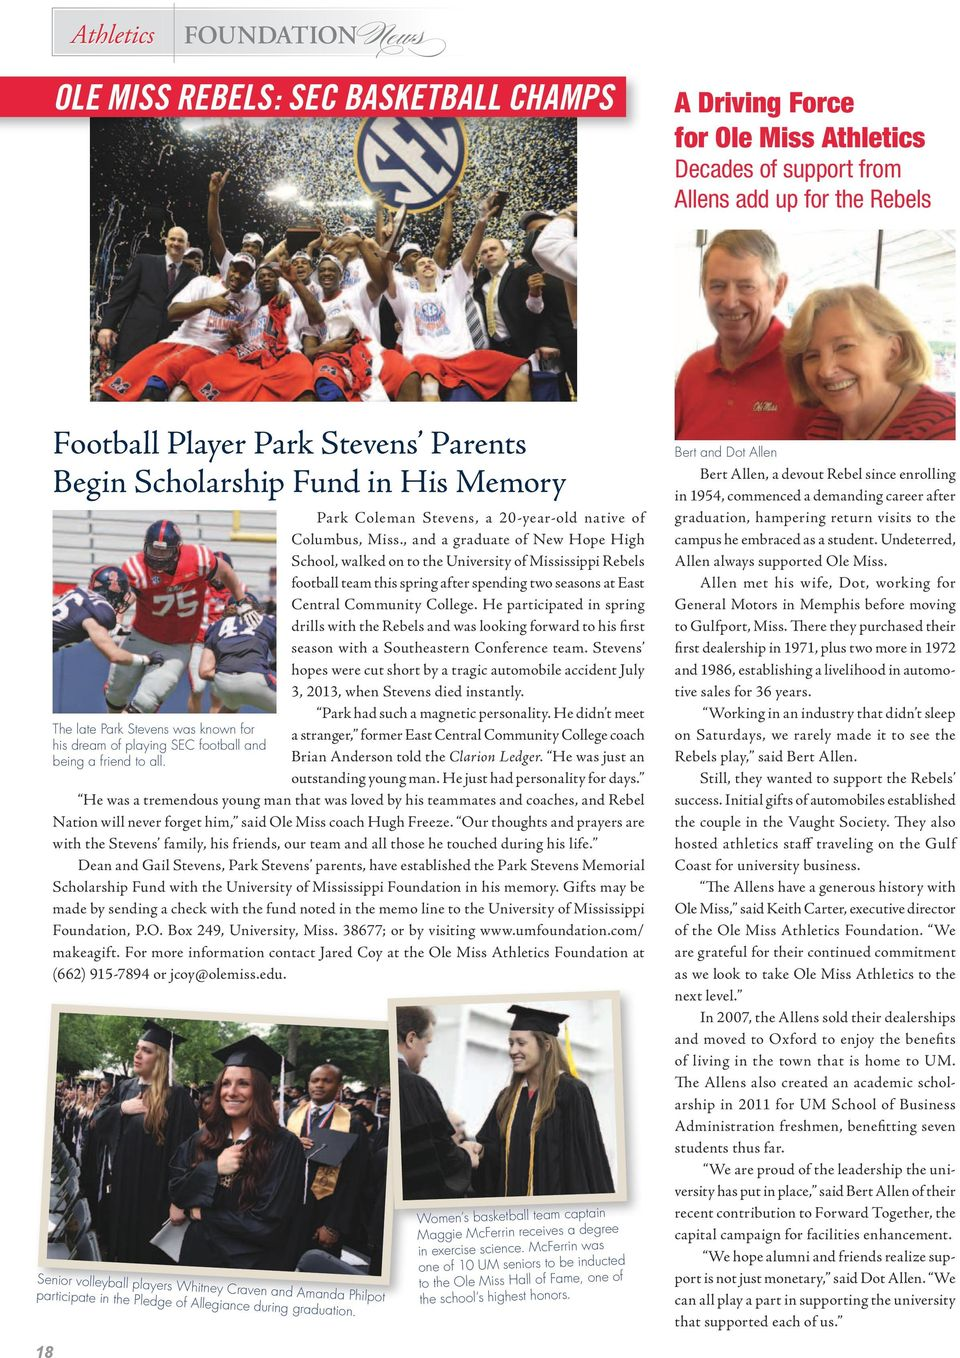 , and a graduate of New Hope High School, walked on to the University of Mississippi Rebels football team this spring after spending two seasons at East Central Community College.